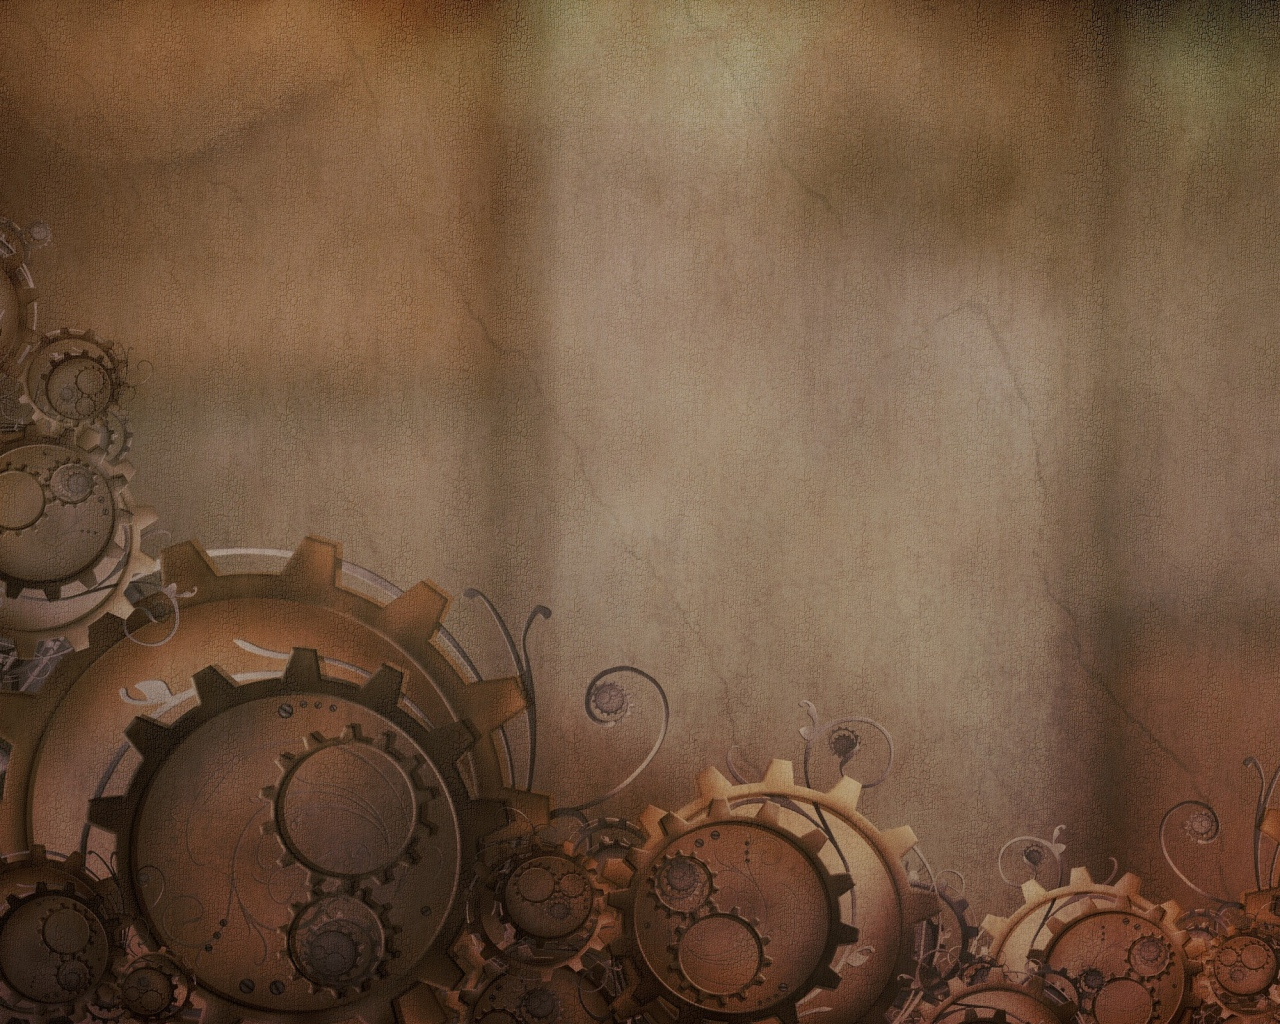 Old Machine Gears Power Point Backgrounds, Old Machine Gears Download ...